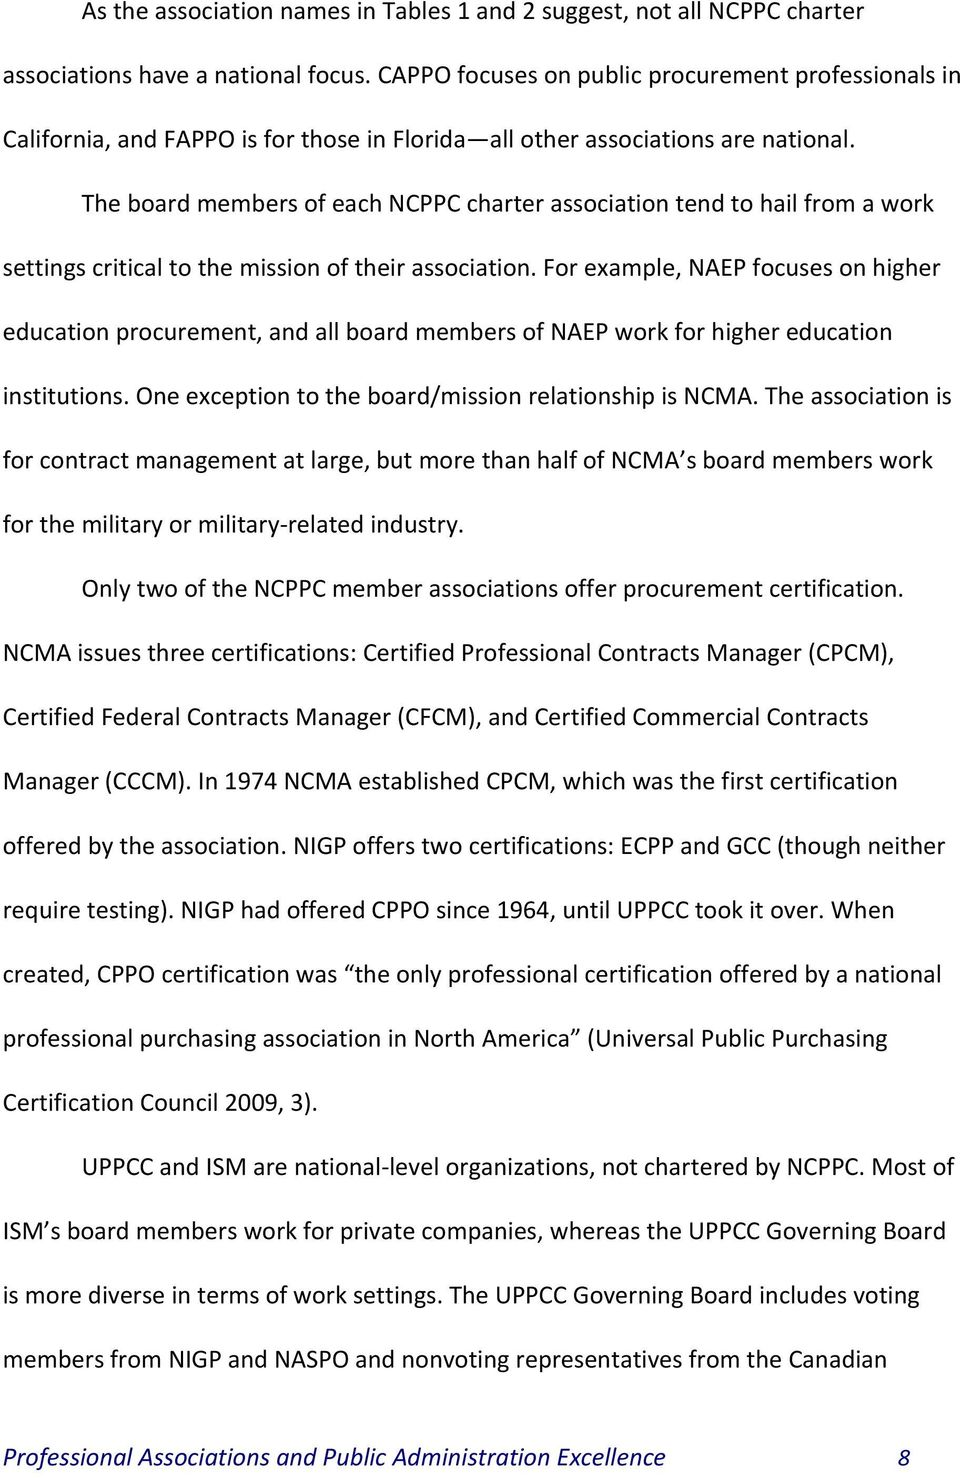 The board members of each NCPPC charter association tend to hail from a work settings critical to the mission of their association.